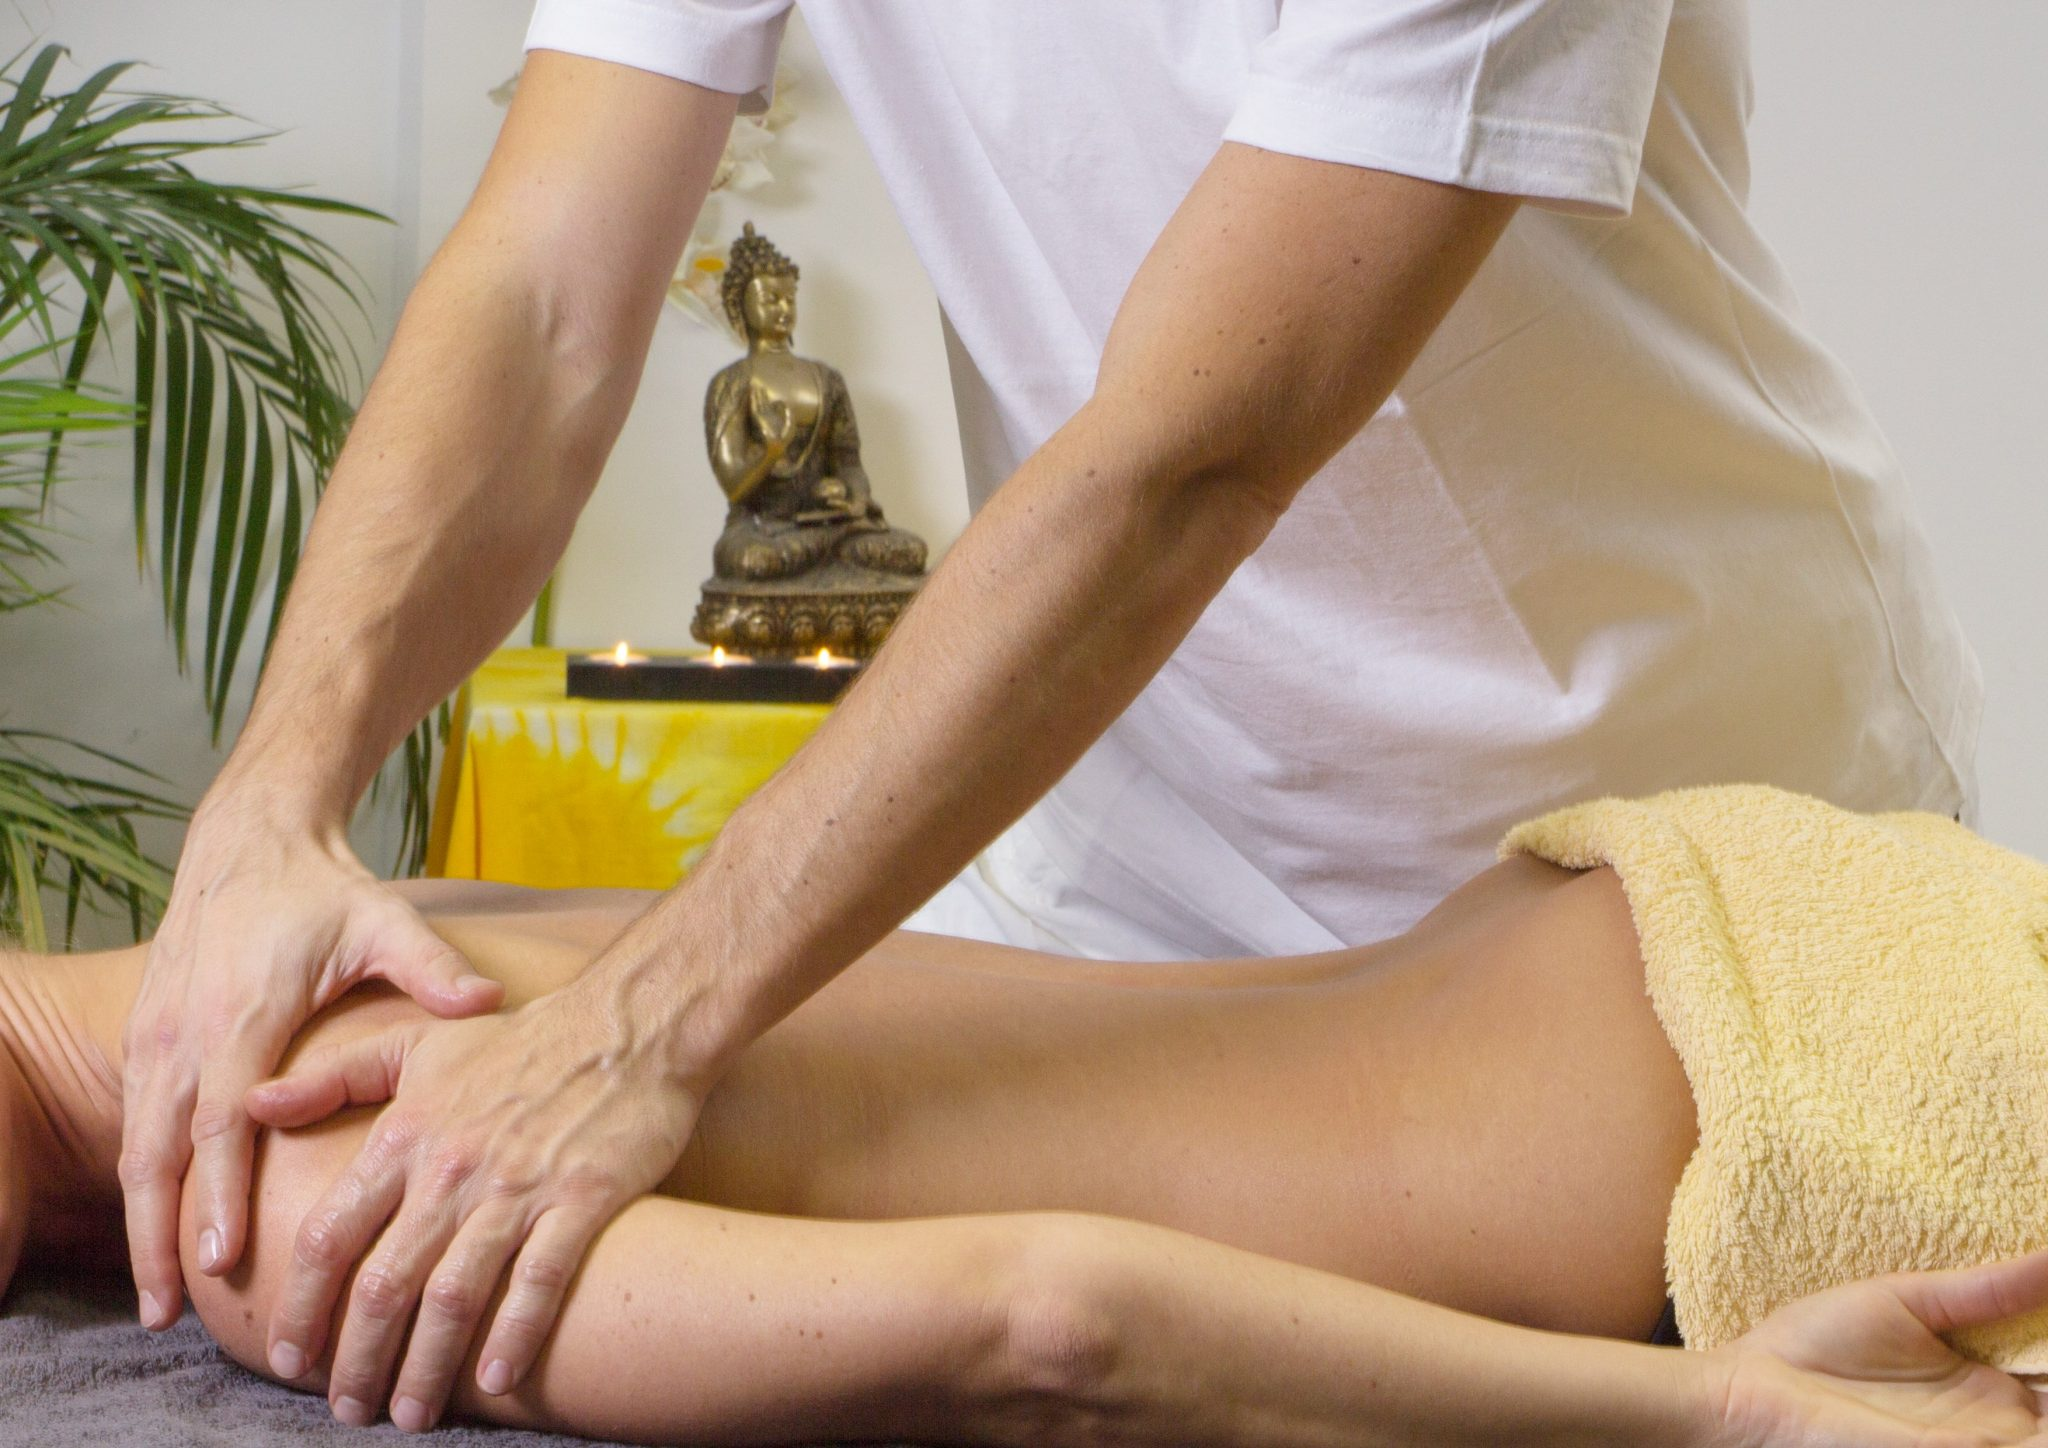 Klassische Massage | Massagetechniken | Vital Massage | www.vitalmassage.at